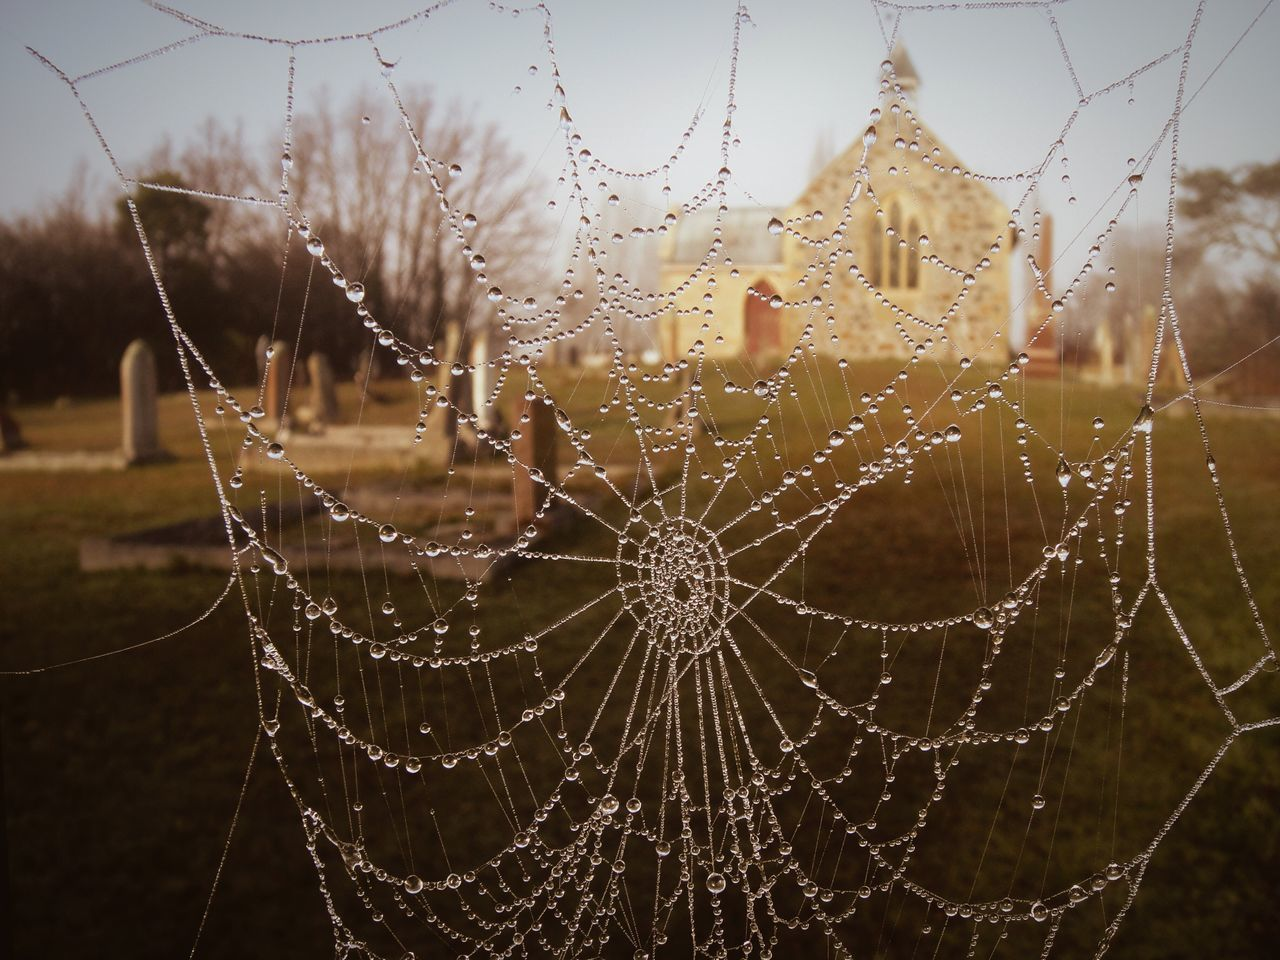 Wet Spider Web Against Church At Cemetery